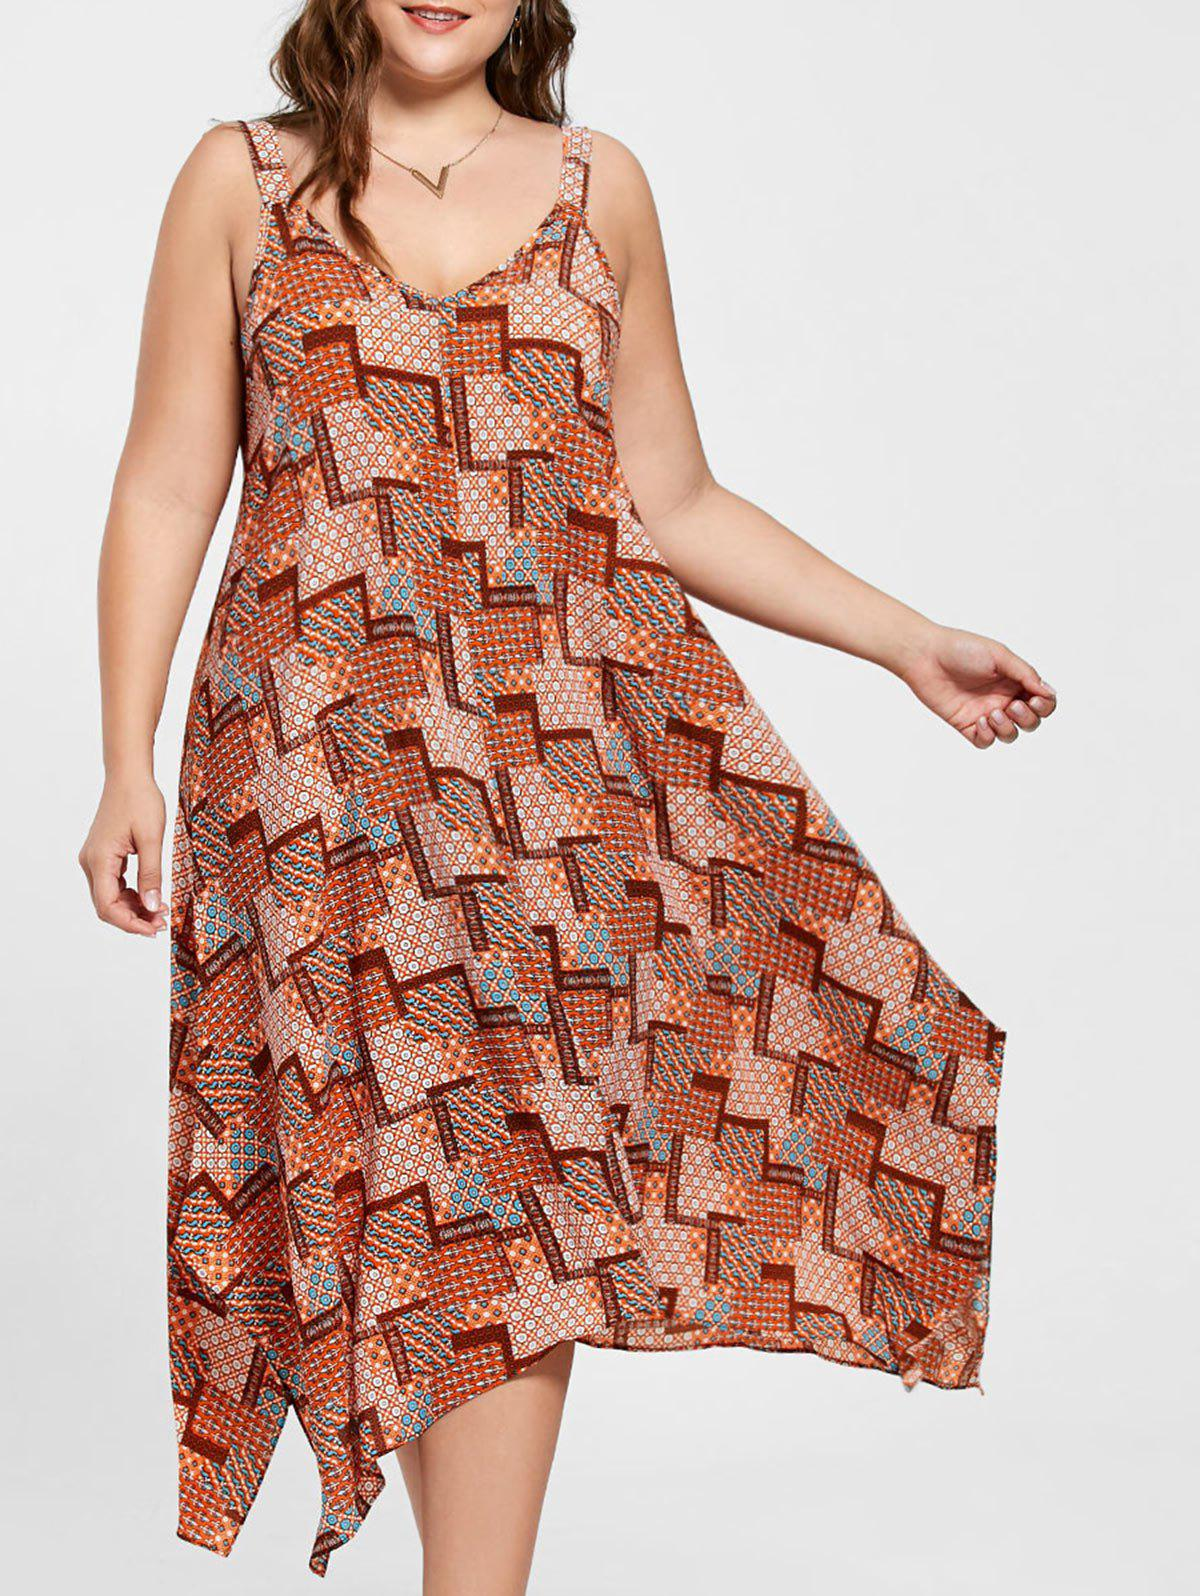 Plus Size Spaghetti Strap Geometric Print Handkerchief Dress - ORANGE 5XL